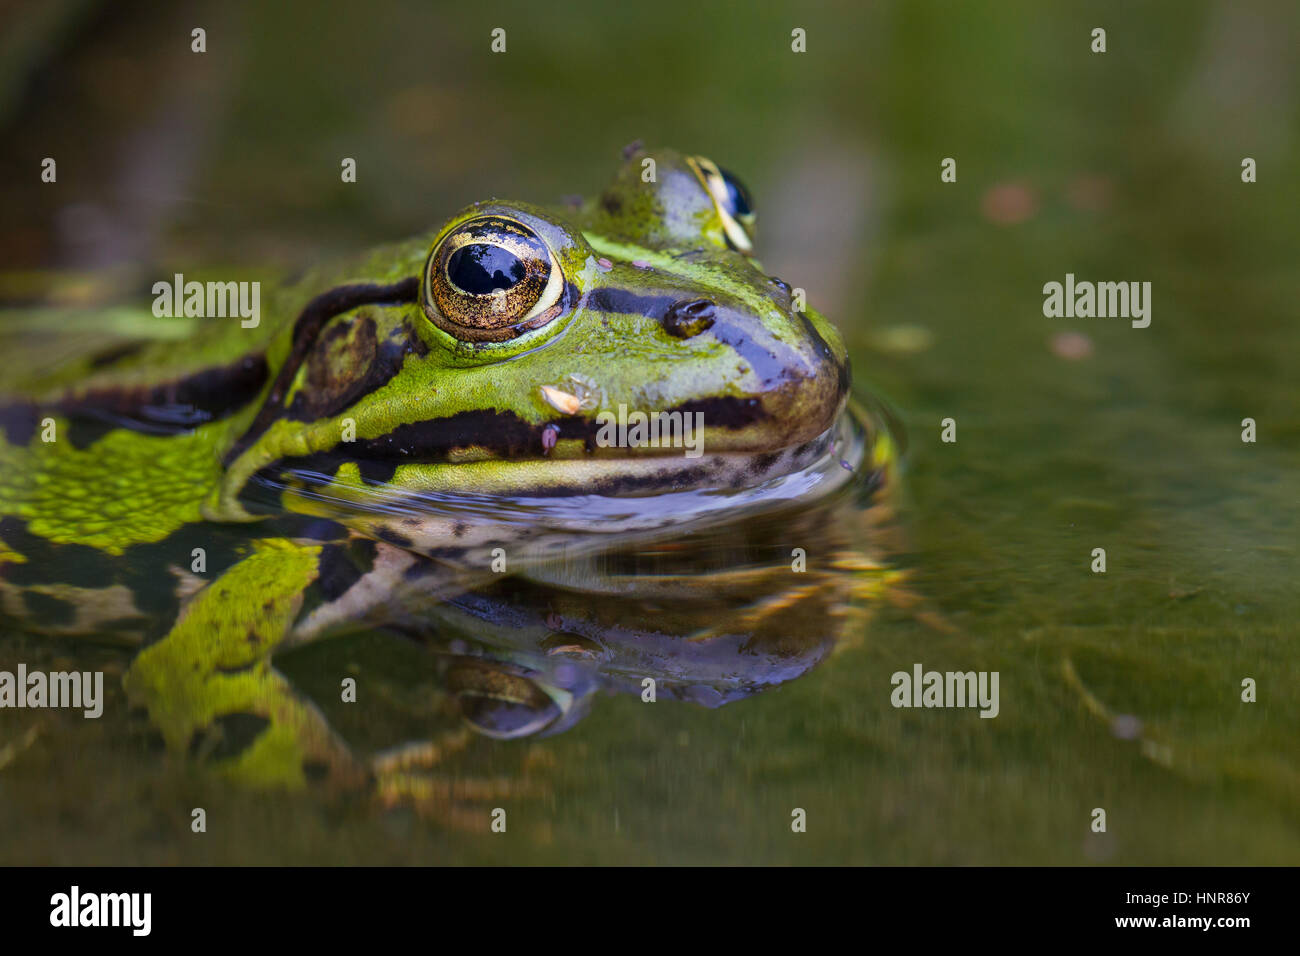 Edible frog / common water frog / green frog (Pelophylax kl. esculentus / Rana kl. esculenta) in pond - Stock Image